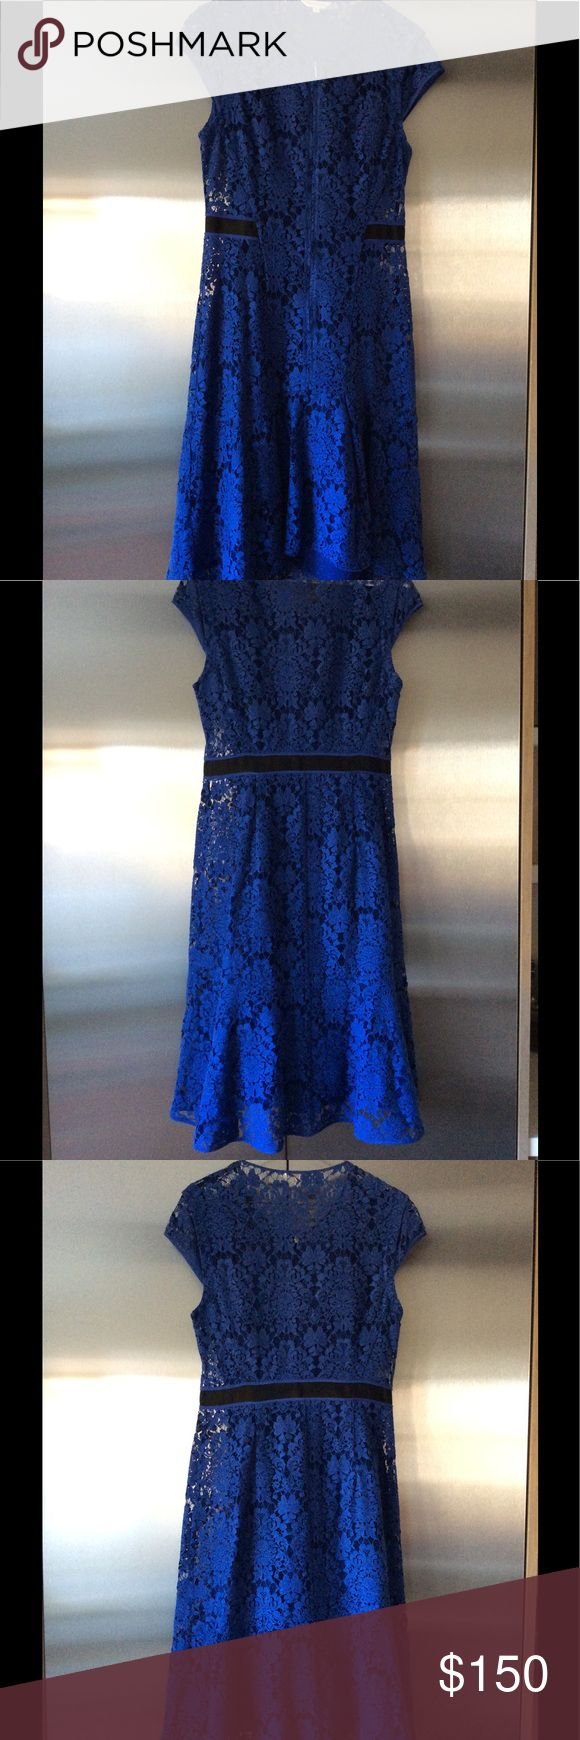 Rebecca Taylor Blue Floral Dress Elegant royal blue floral Rebecca Taylor dress cocktail size 4 Rebecca Taylor Dresses Midi